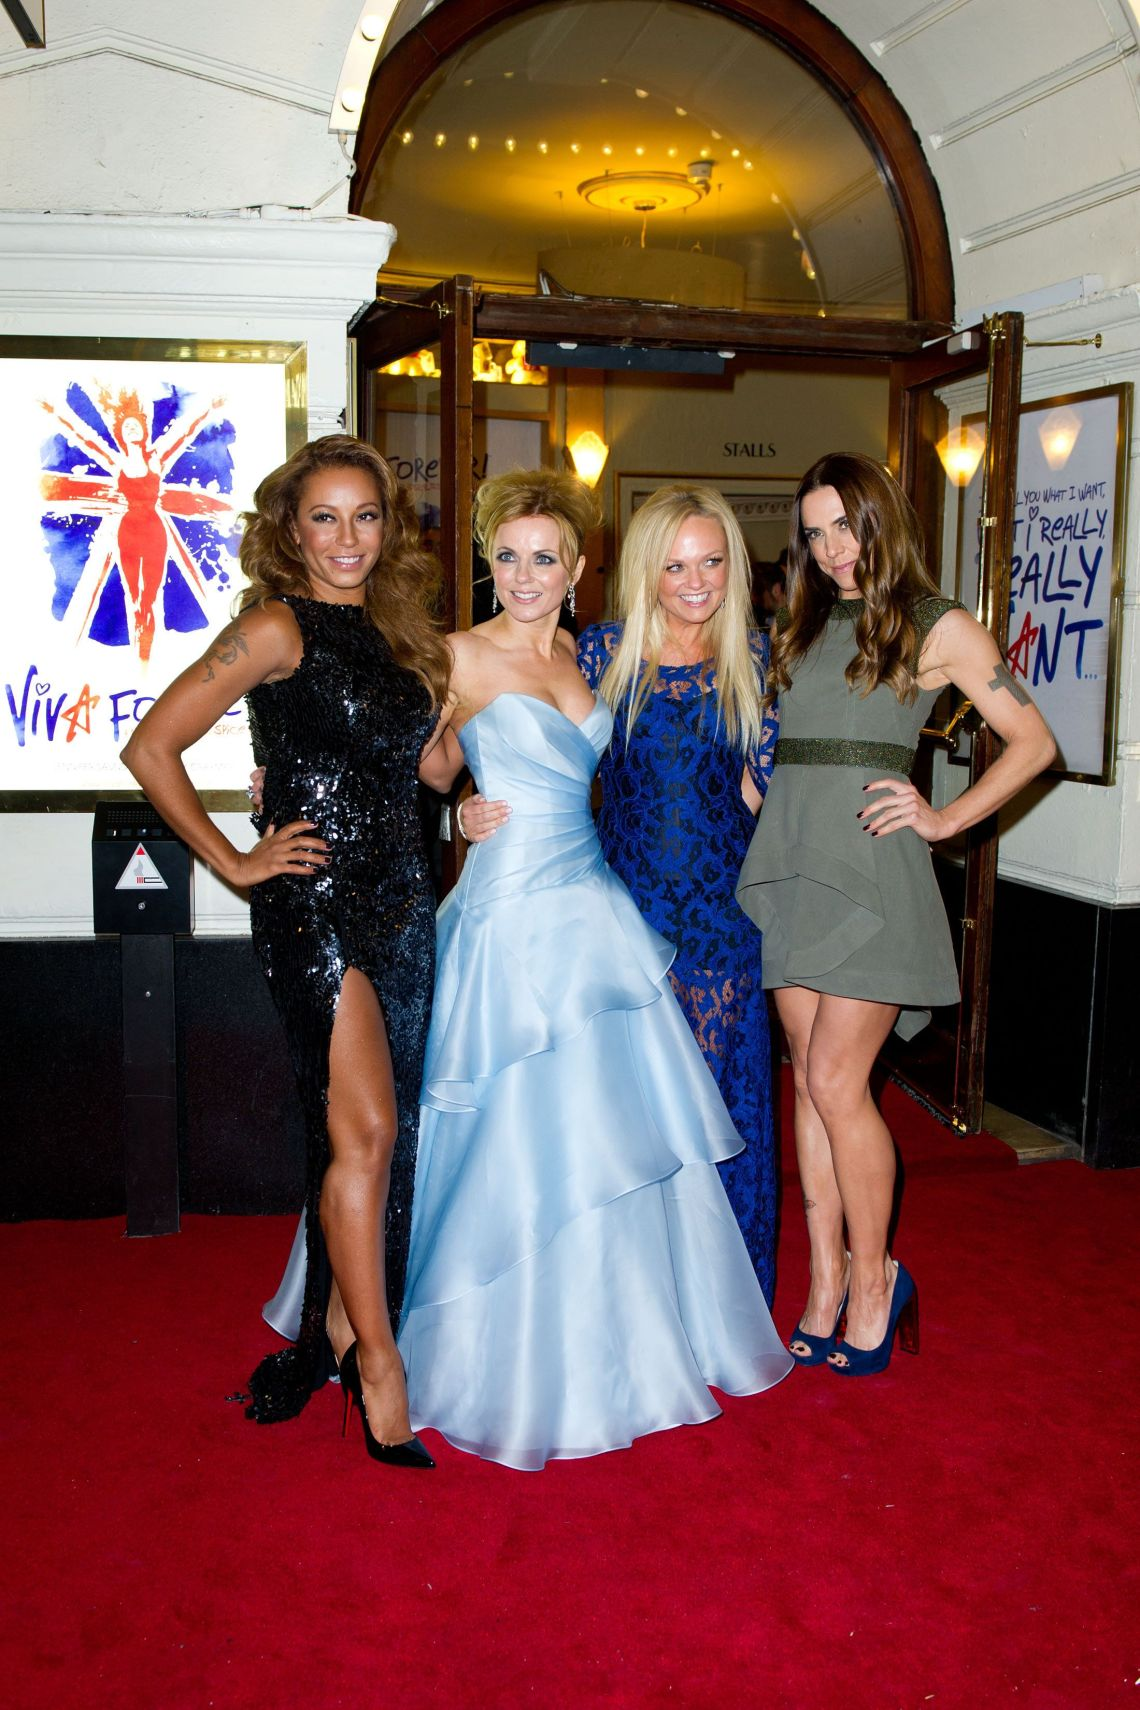 The Spice Girls are reportedly reuniting as a four-piece